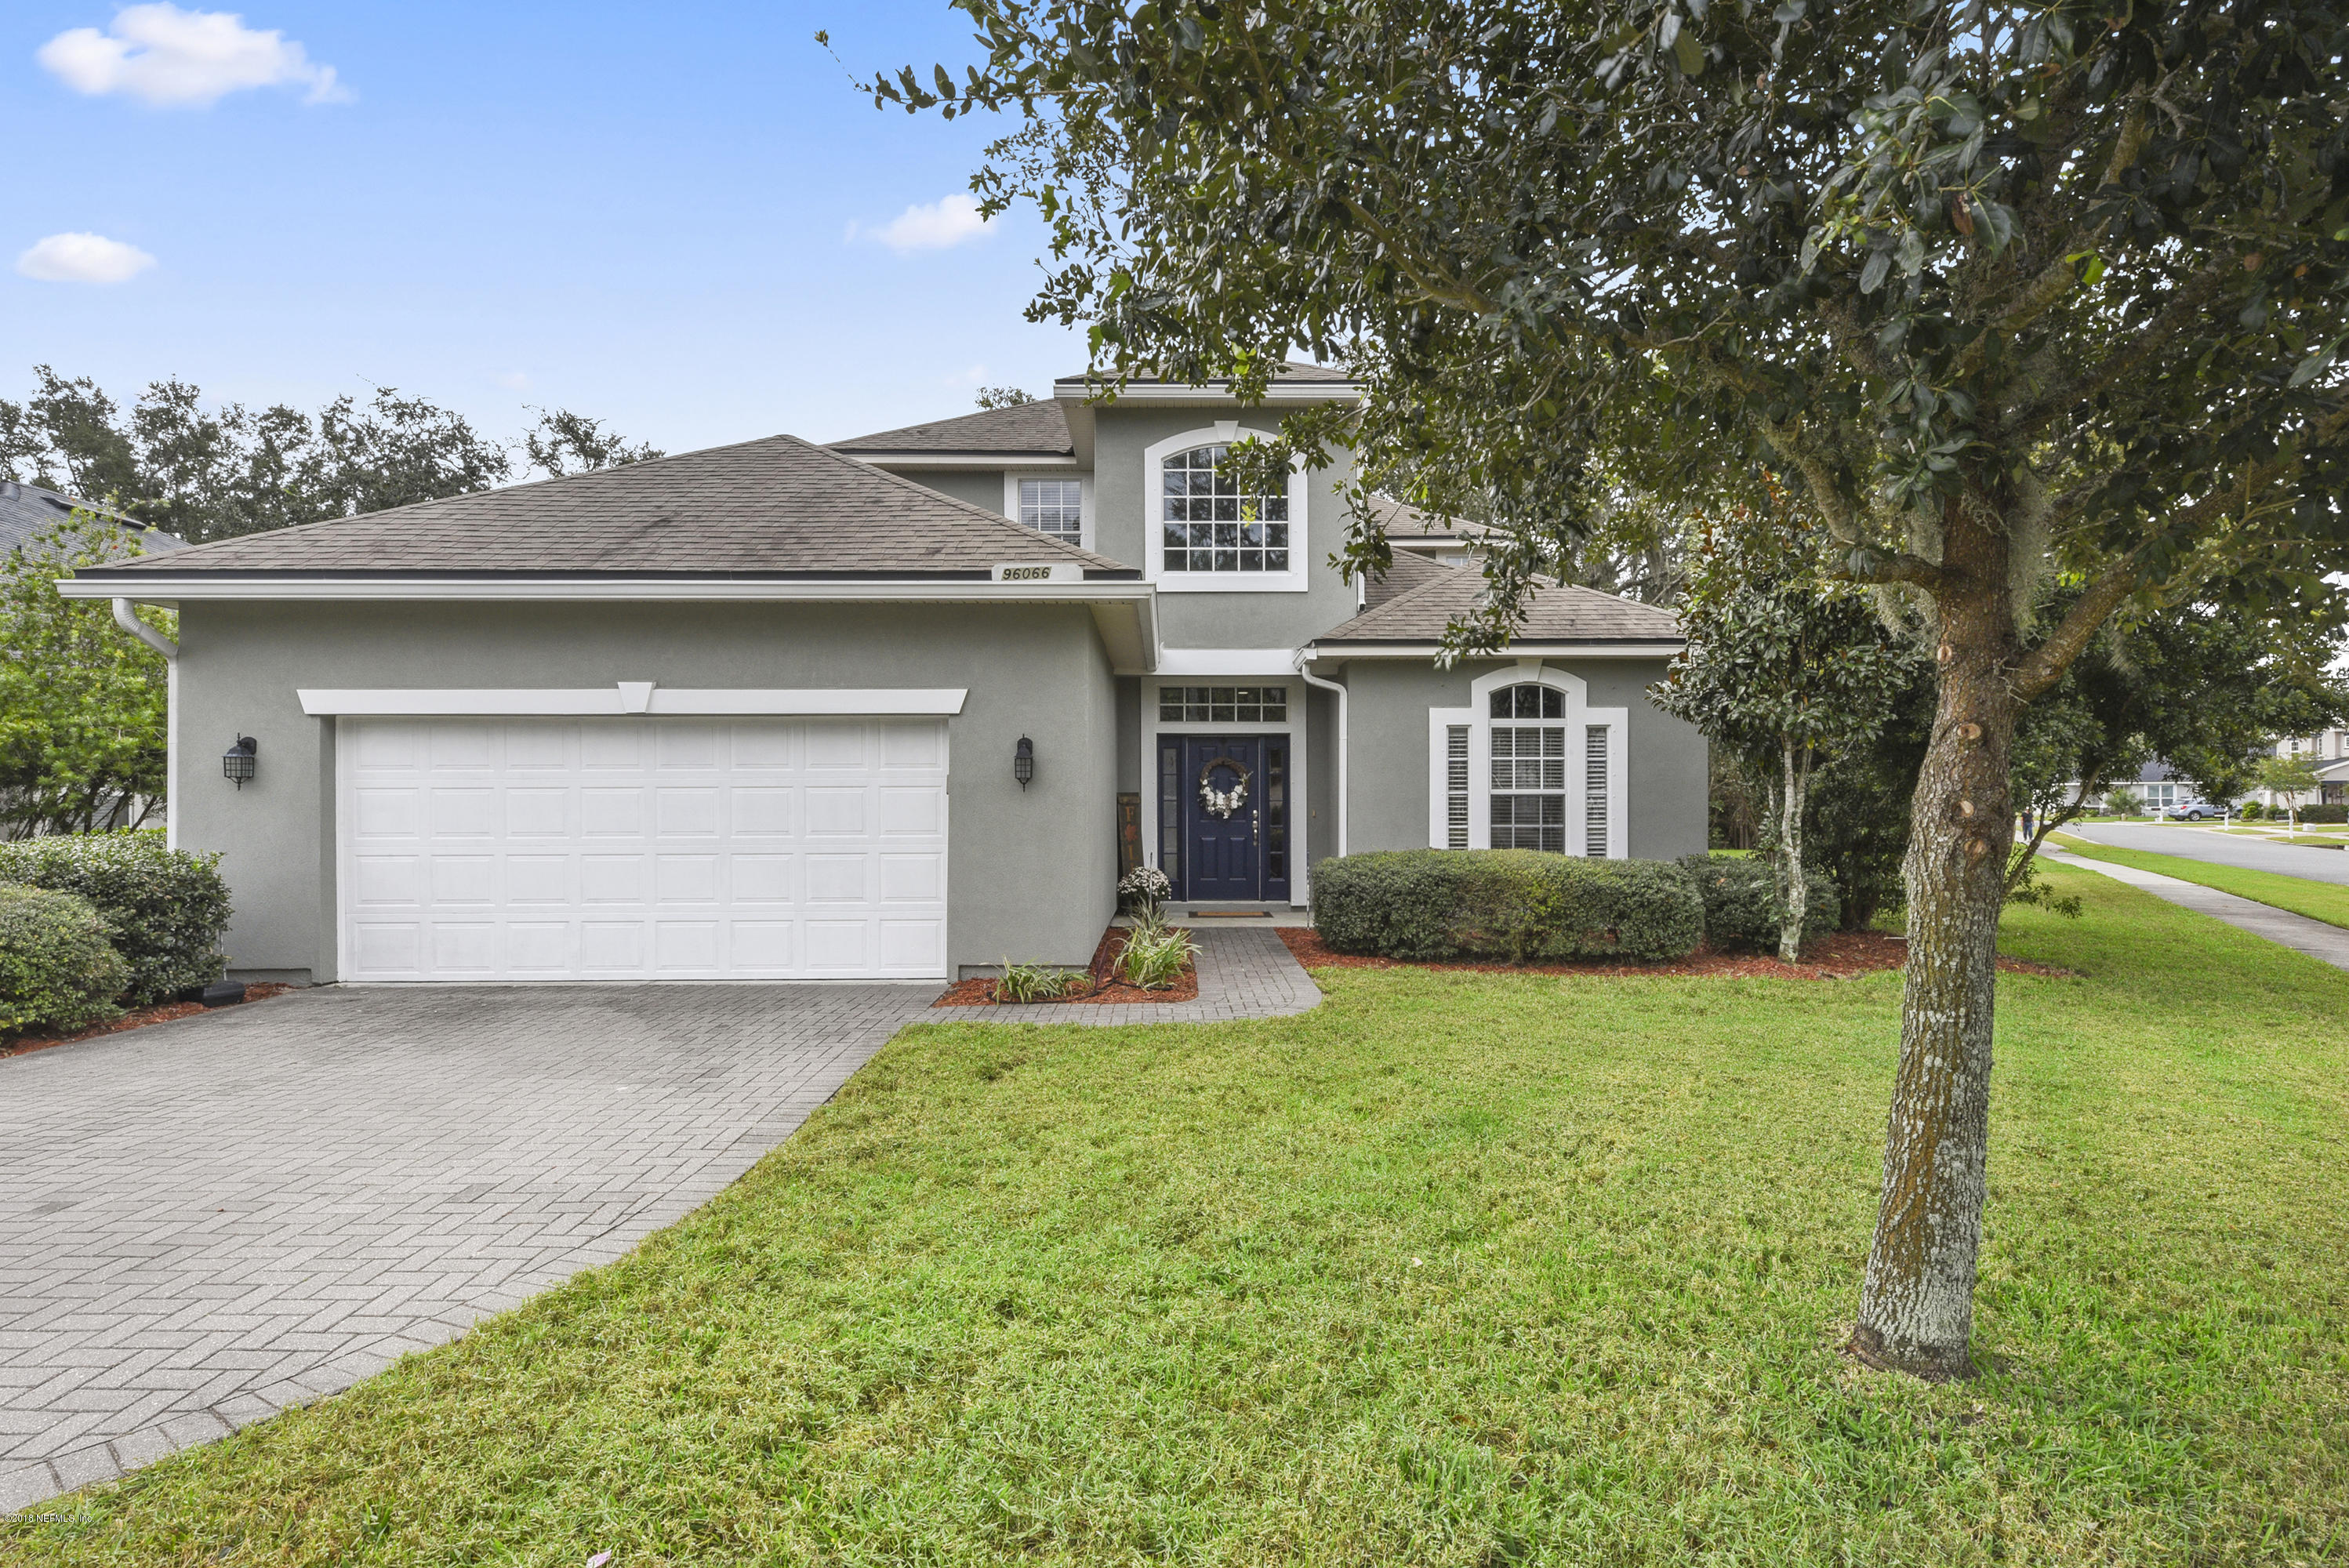 96066 WINDSOR, YULEE, FLORIDA 32097, 4 Bedrooms Bedrooms, ,2 BathroomsBathrooms,Residential - single family,For sale,WINDSOR,965271